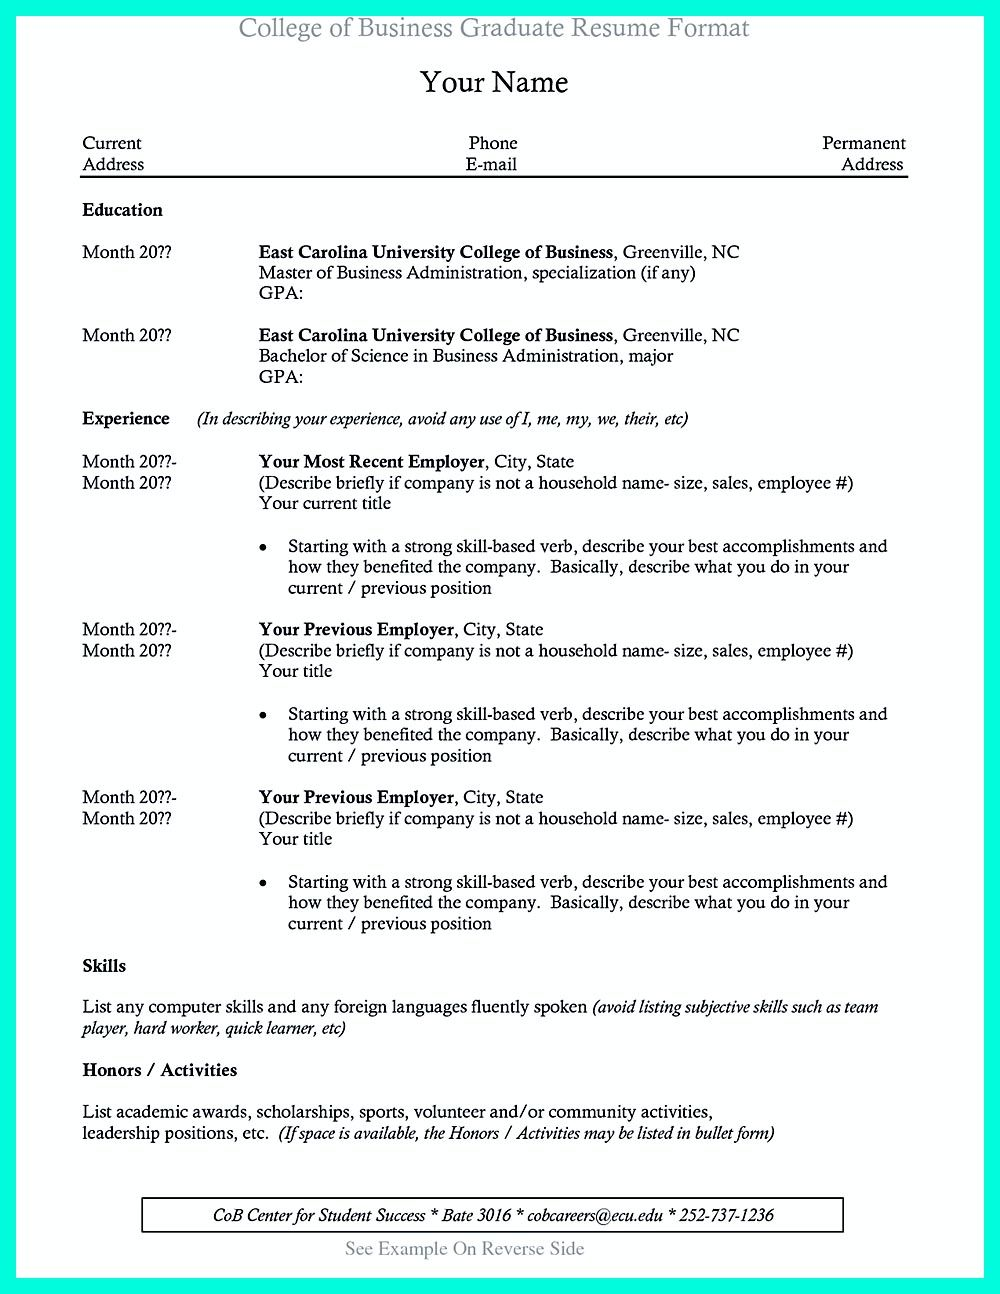 College Student Resume Can Be Really Challenging As This Can Be The